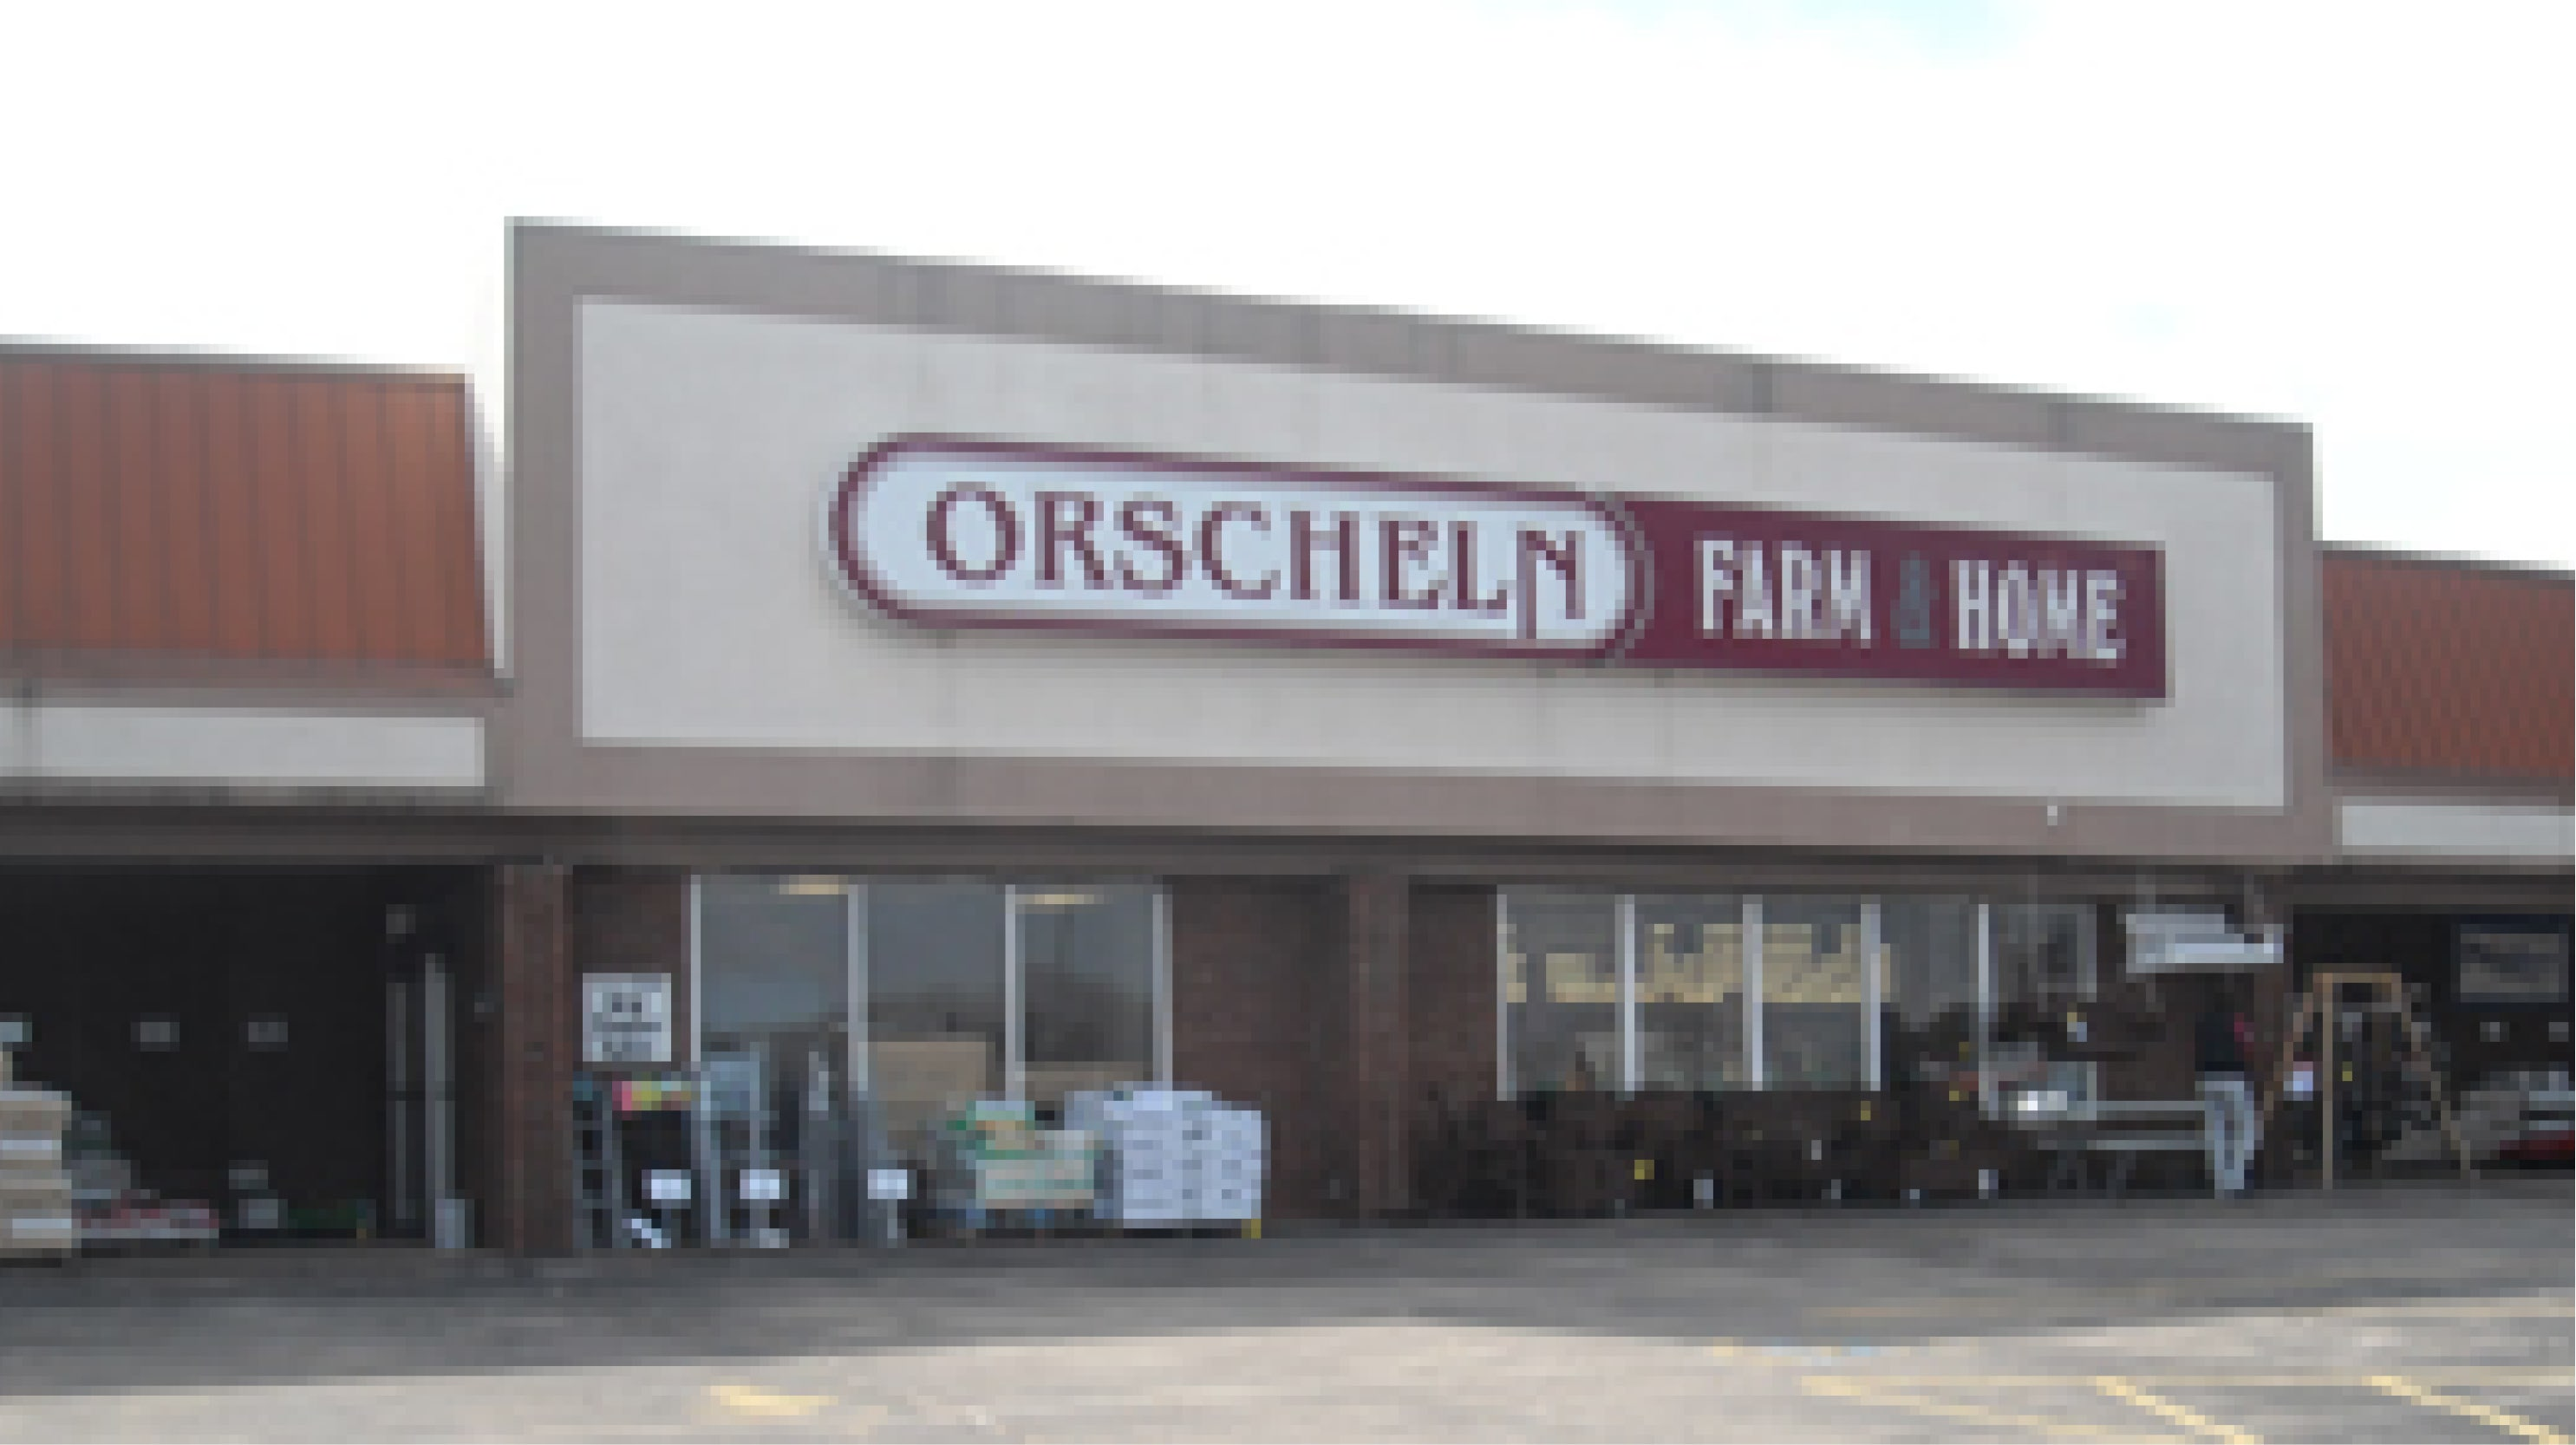 Front view of Orscheln Farm & Home Store in Sullivan, Missouri 63080